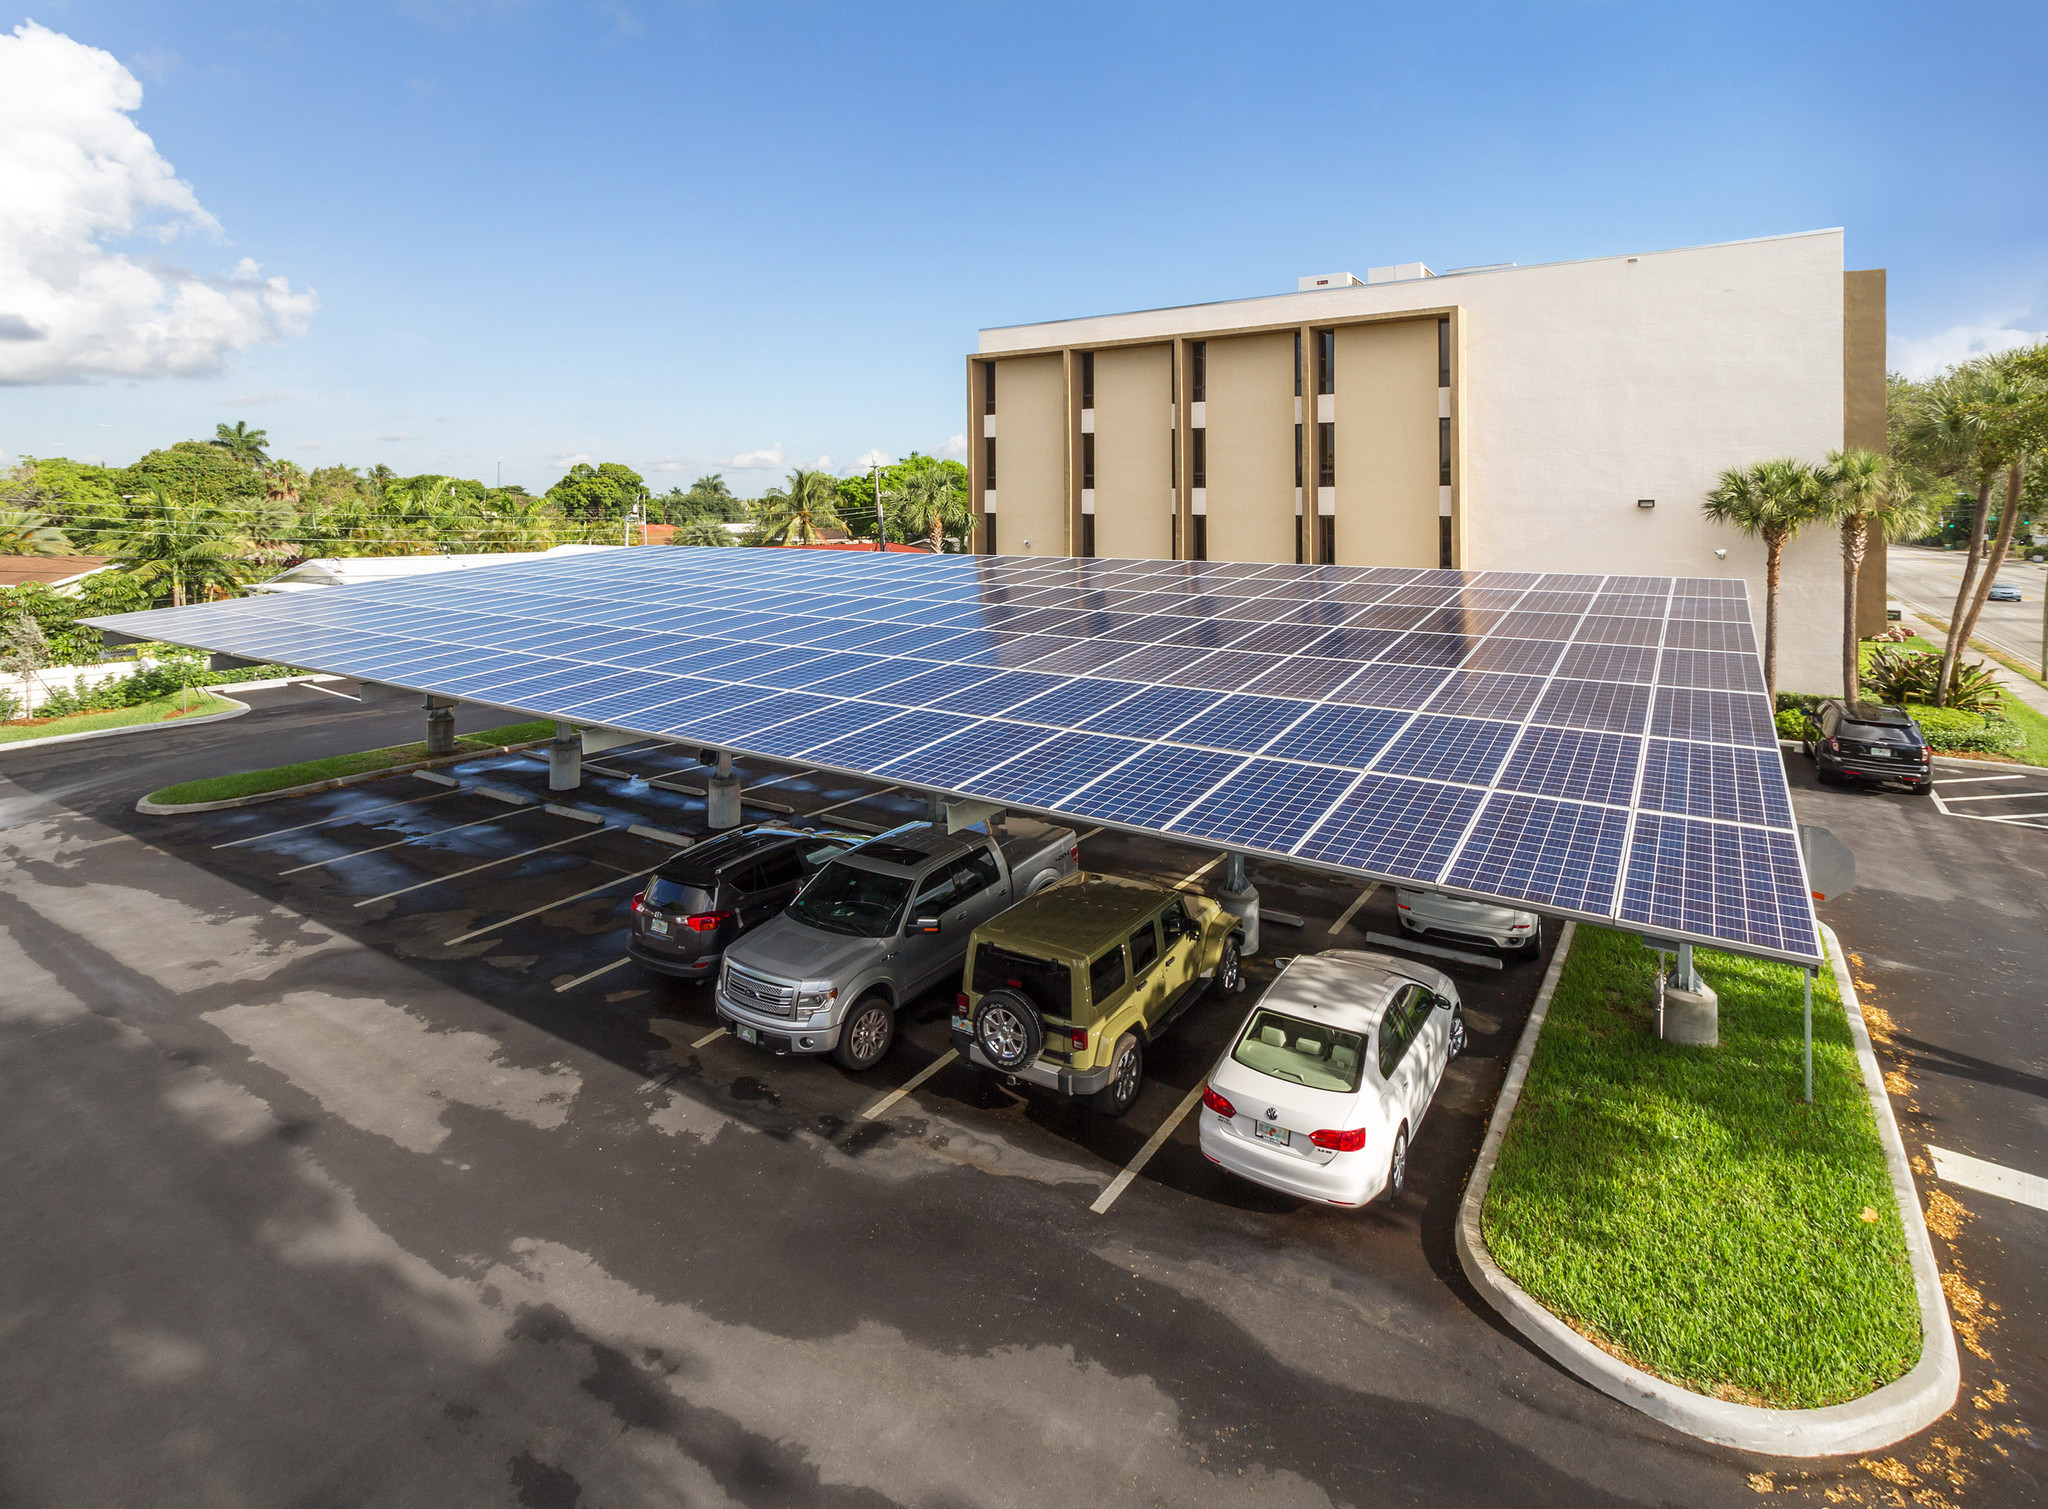 Building company Moss completes solar-panel parking canopy in Fort Lauderdale - Sun Sentinel & Building company Moss completes solar-panel parking canopy in Fort ...